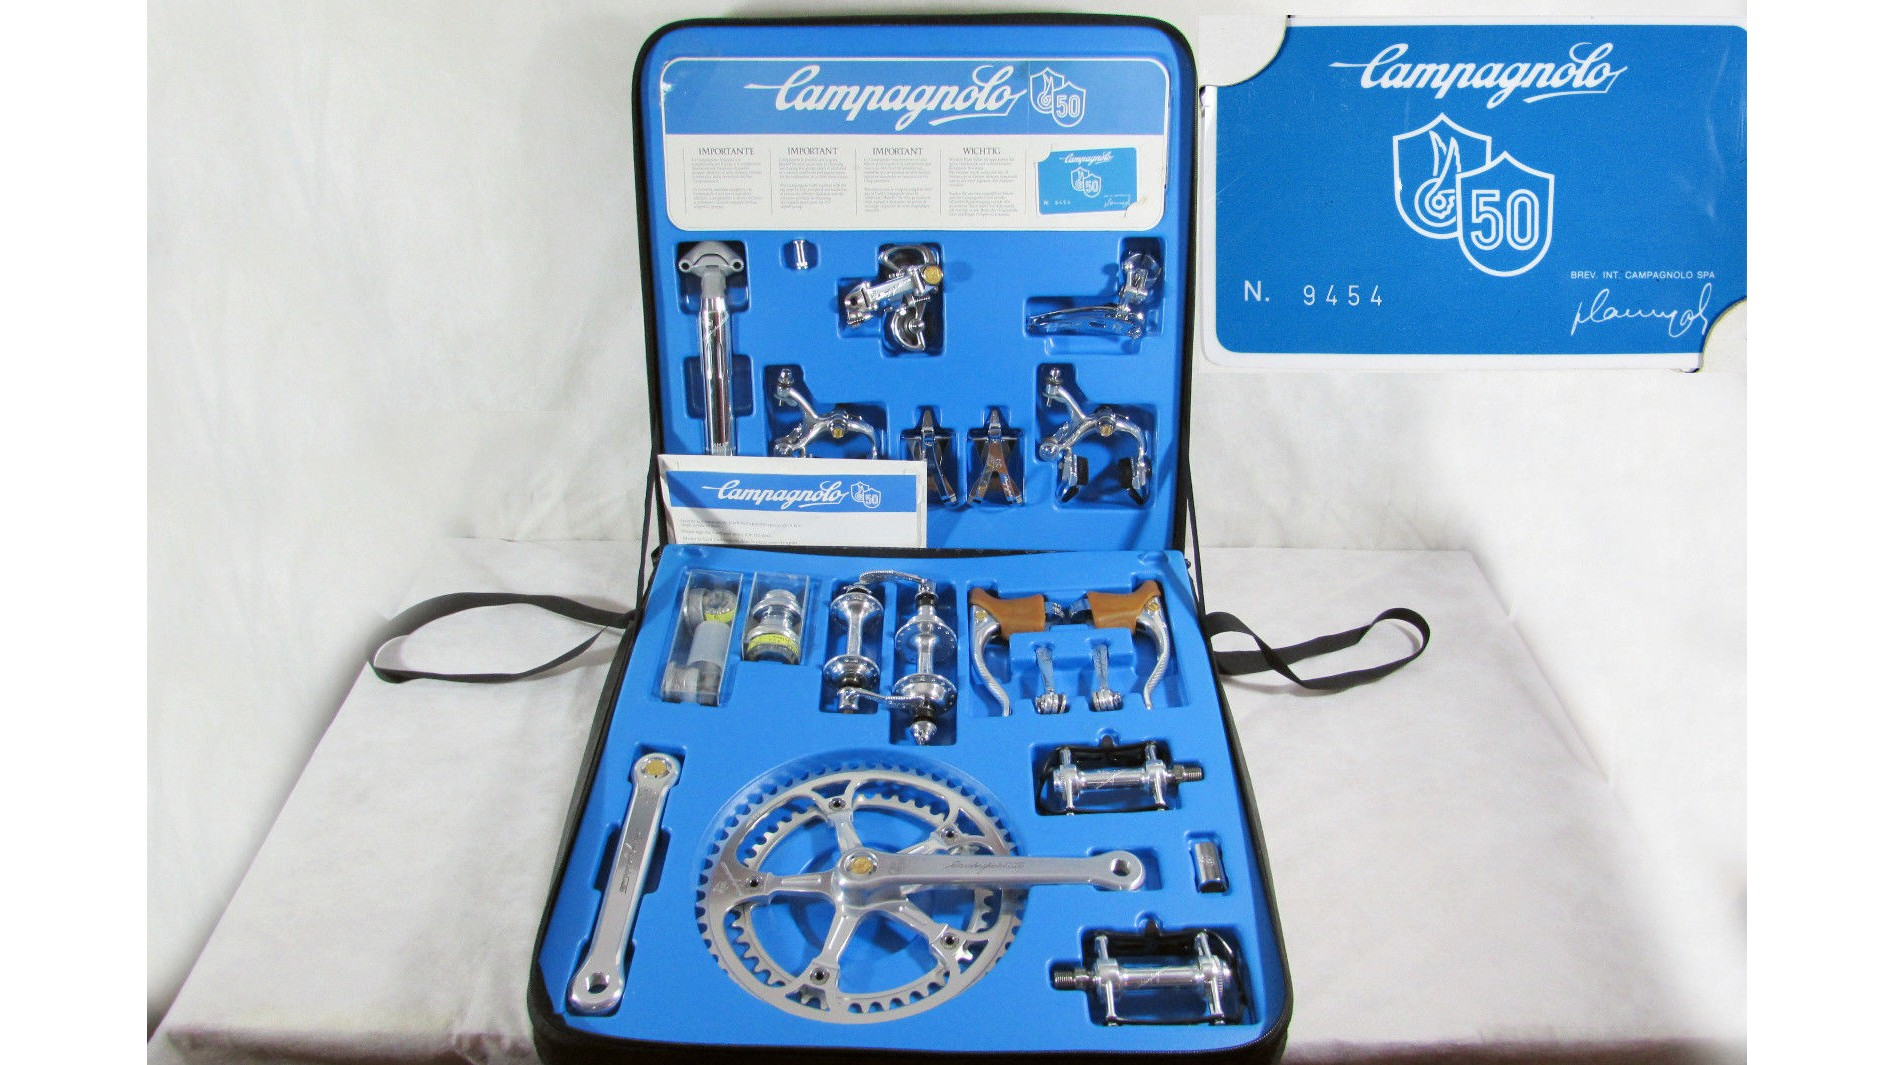 Campagnolo celebrated its 50th anniversary by releasing this seriously lush, limited edition groupset